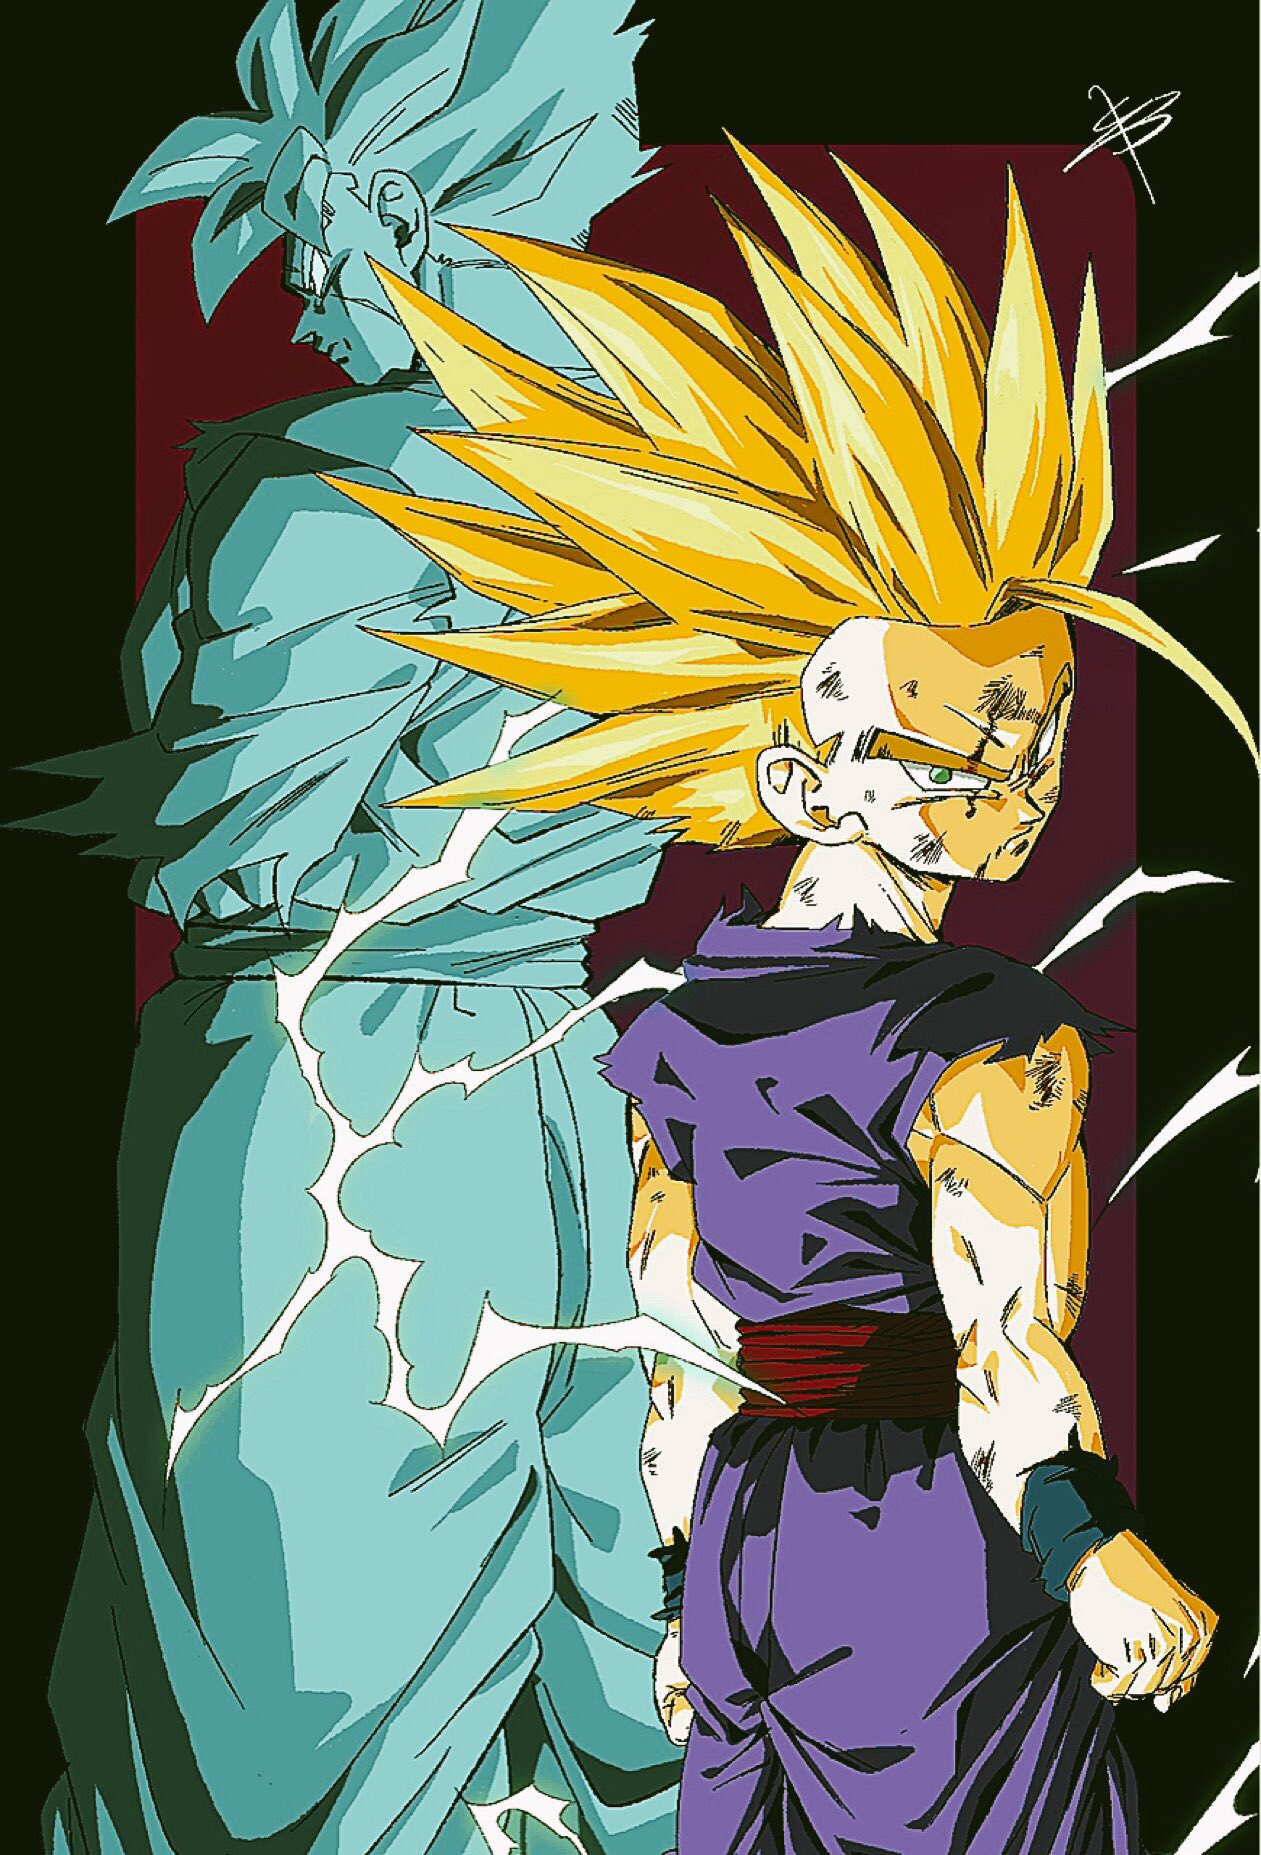 2boys age_difference arms_at_sides backlighting blonde_hair clenched_hands dark_background dirty dirty_face dougi dragon_ball dragon_ball_z dual_persona electricity facial_scar feet_out_of_frame fingernails green_eyes height_difference highres looking_at_viewer looking_away looking_back male_focus messy_hair multiple_boys rectangle red_background reeya scar scar_on_cheek serious shaded_face signature son_gohan son_gohan_(future) spiky_hair standing super_saiyan_2 wristband